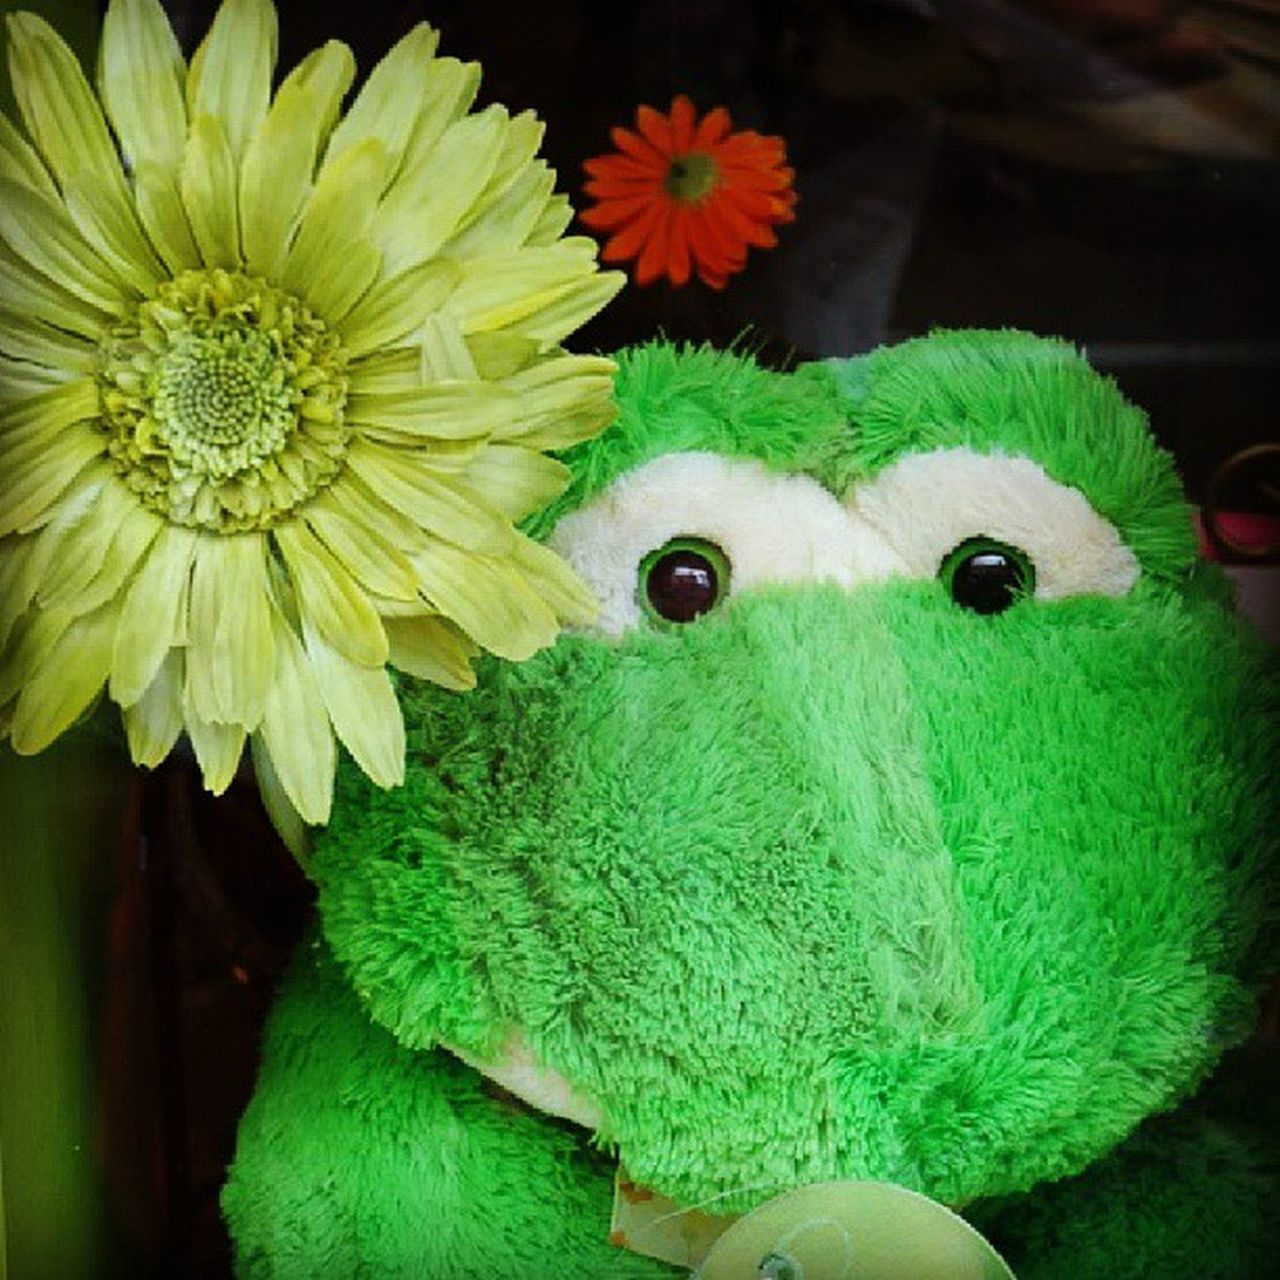 """""""Aloha! please meet Froggie Croakie. He hails from Big Island, Hawai'i . We met in May 2008. ╰( ̄▽ ̄)╭ Saw him peeping thru' the window but we aren't fated to be together...however, he has been frozen in time in S'pore...^^b"""" Storyoftheday Allshots_ Almaproject Quoteism Canvasme Dailythemes Green Frog Froggie Gf_usa Gf_daily Gang_family Toys Ig_toydolls Ketsourinemacarons Walkwaywhy Siam_minimal_green Siam_minimal Igkreatif Ig_fotogramers Softtoys Ourlifetoday Snappeak Pb_px Phototag_it instagram_sg instagrammers hawaii ig_singapore theymakemehappy_pg"""